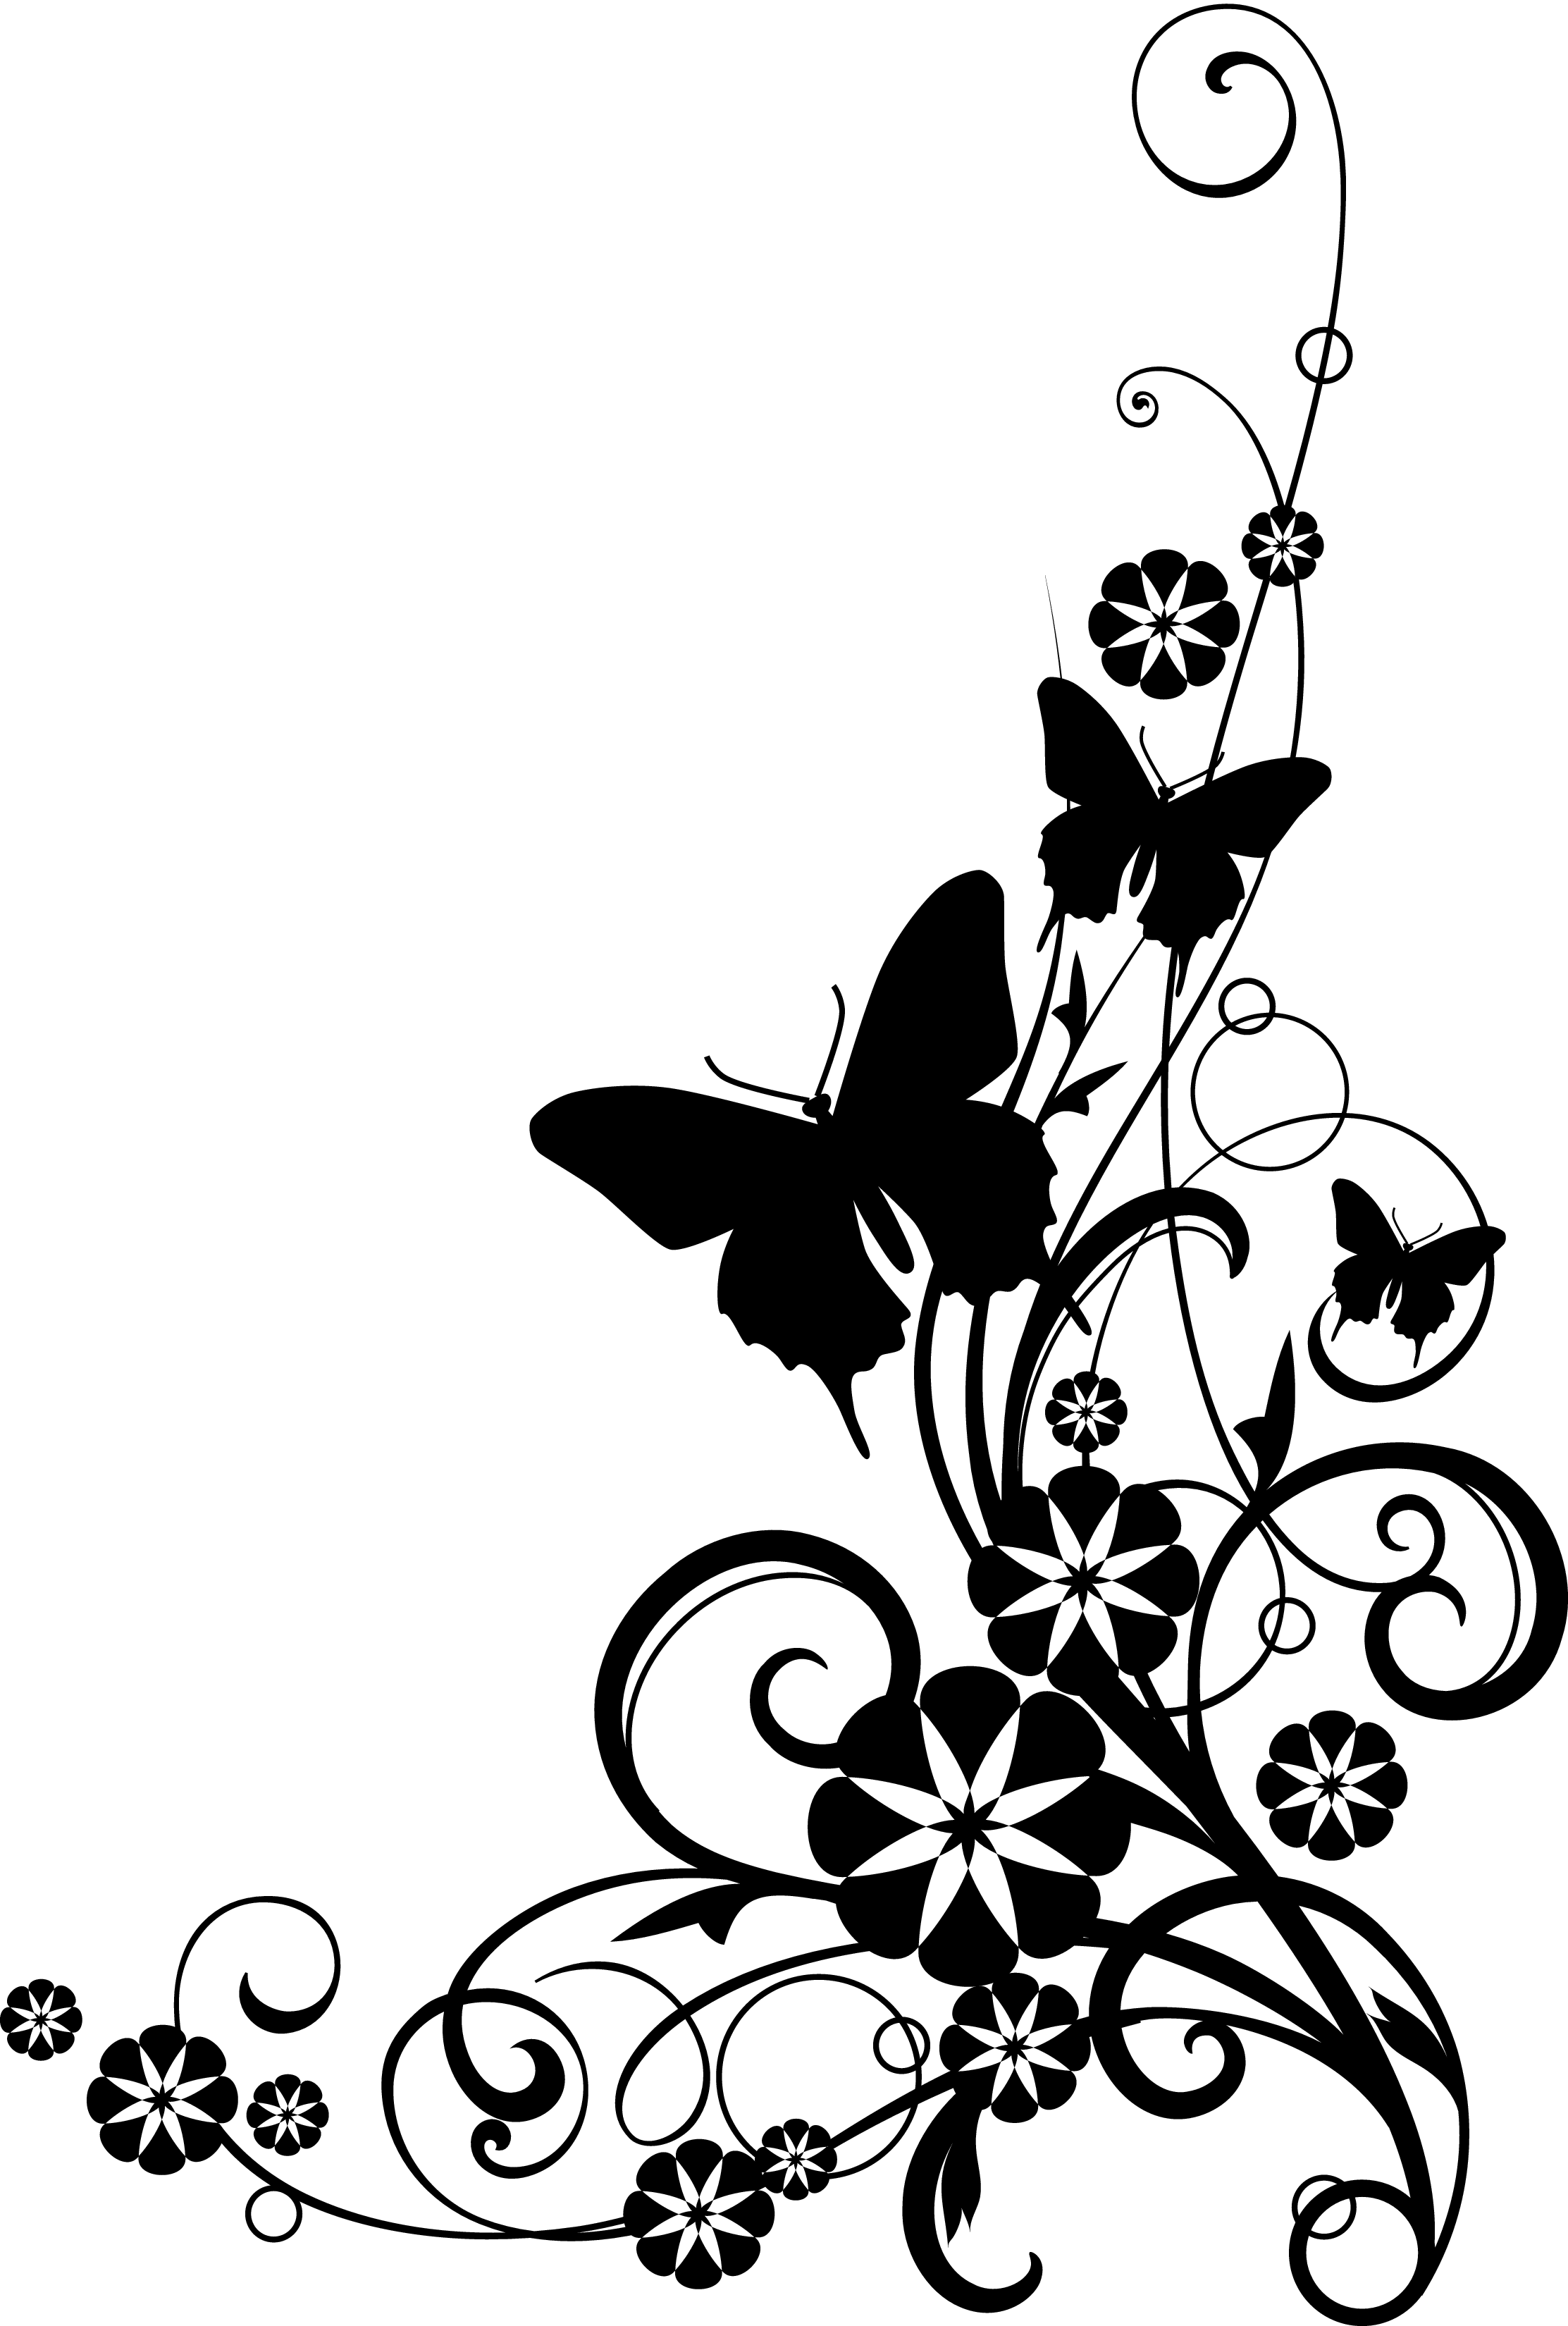 Black border design png. And white flower clipart